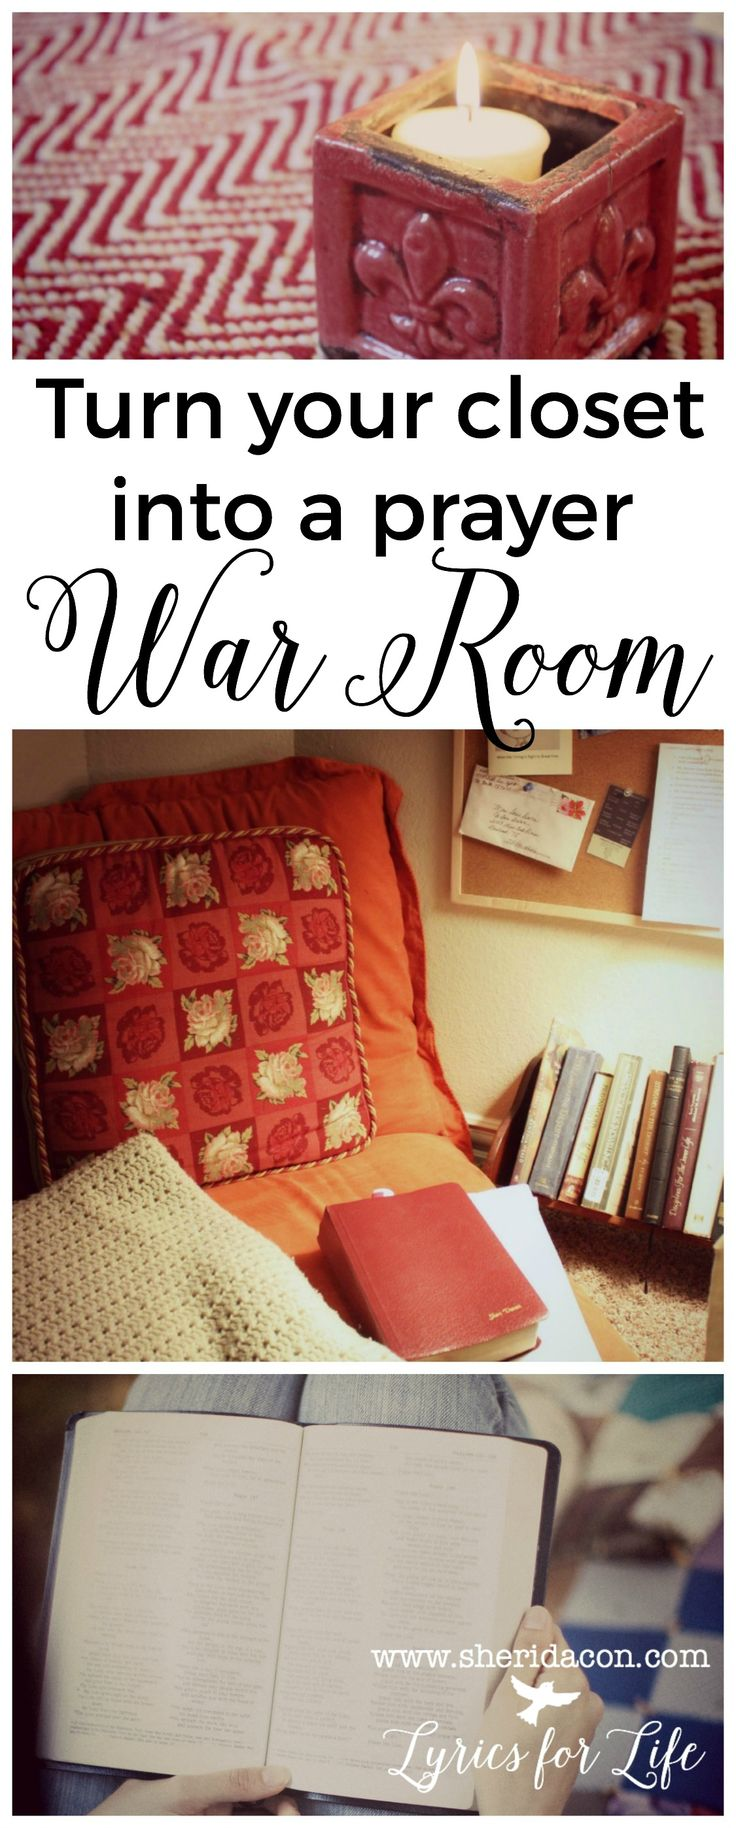 """Want to transform even the tiniest space into a prayer closet or a personal """"war room?"""" Here's how you can get started today!"""